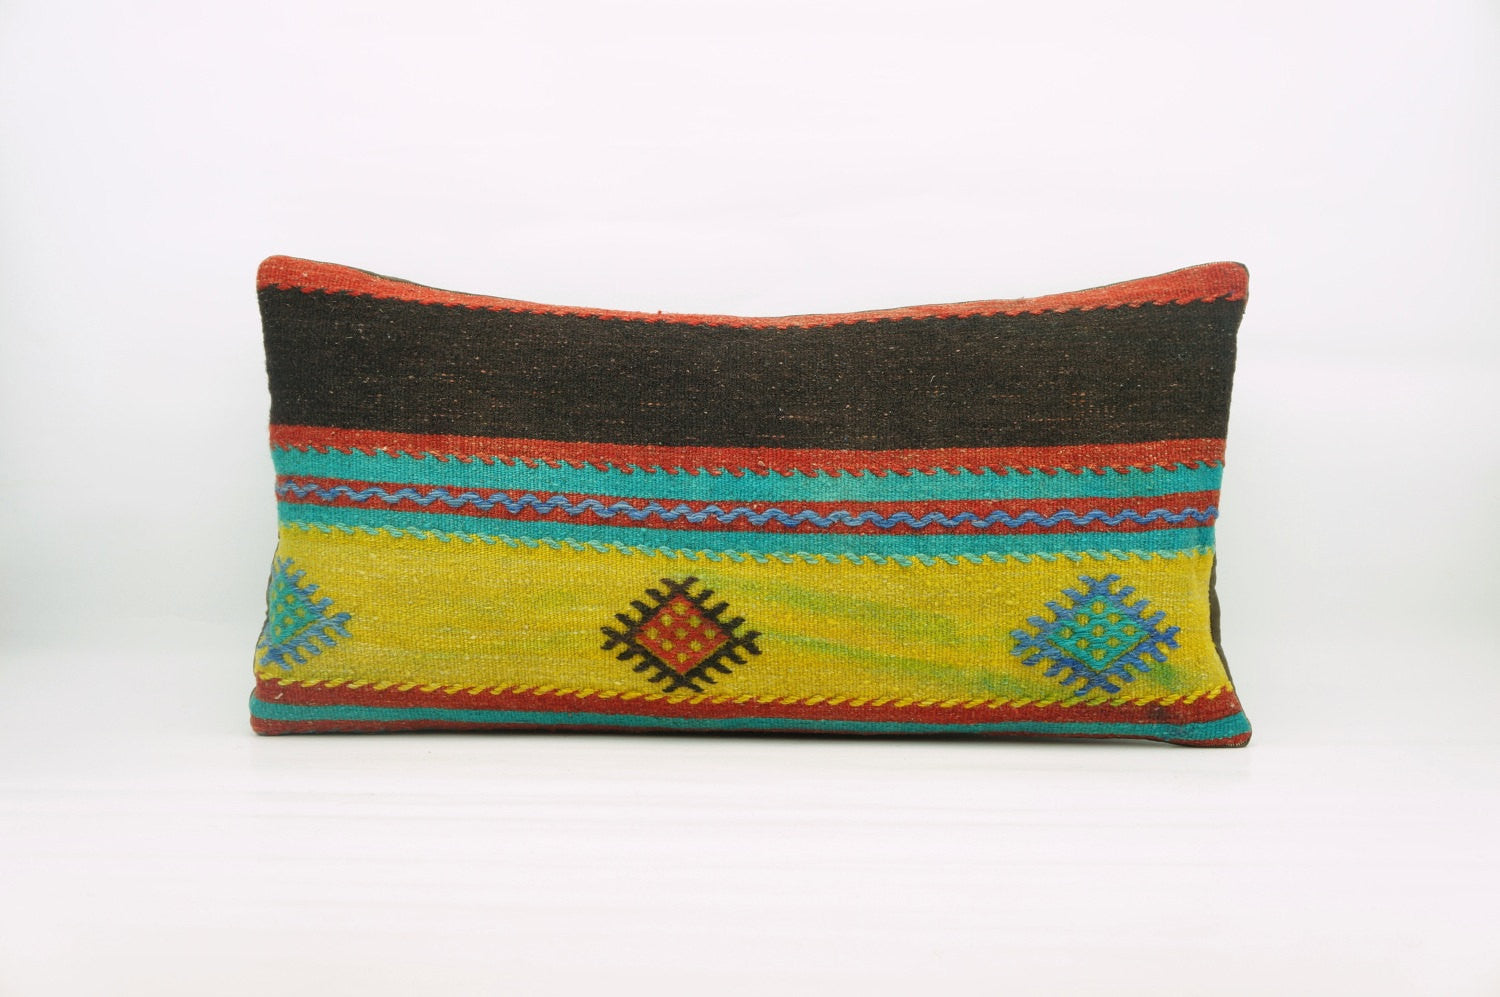 12x24  Geometric kilim pillow sham, Tribal cushion cover, Striped Handwoven pillowcase , mid century decor multi colour 1217